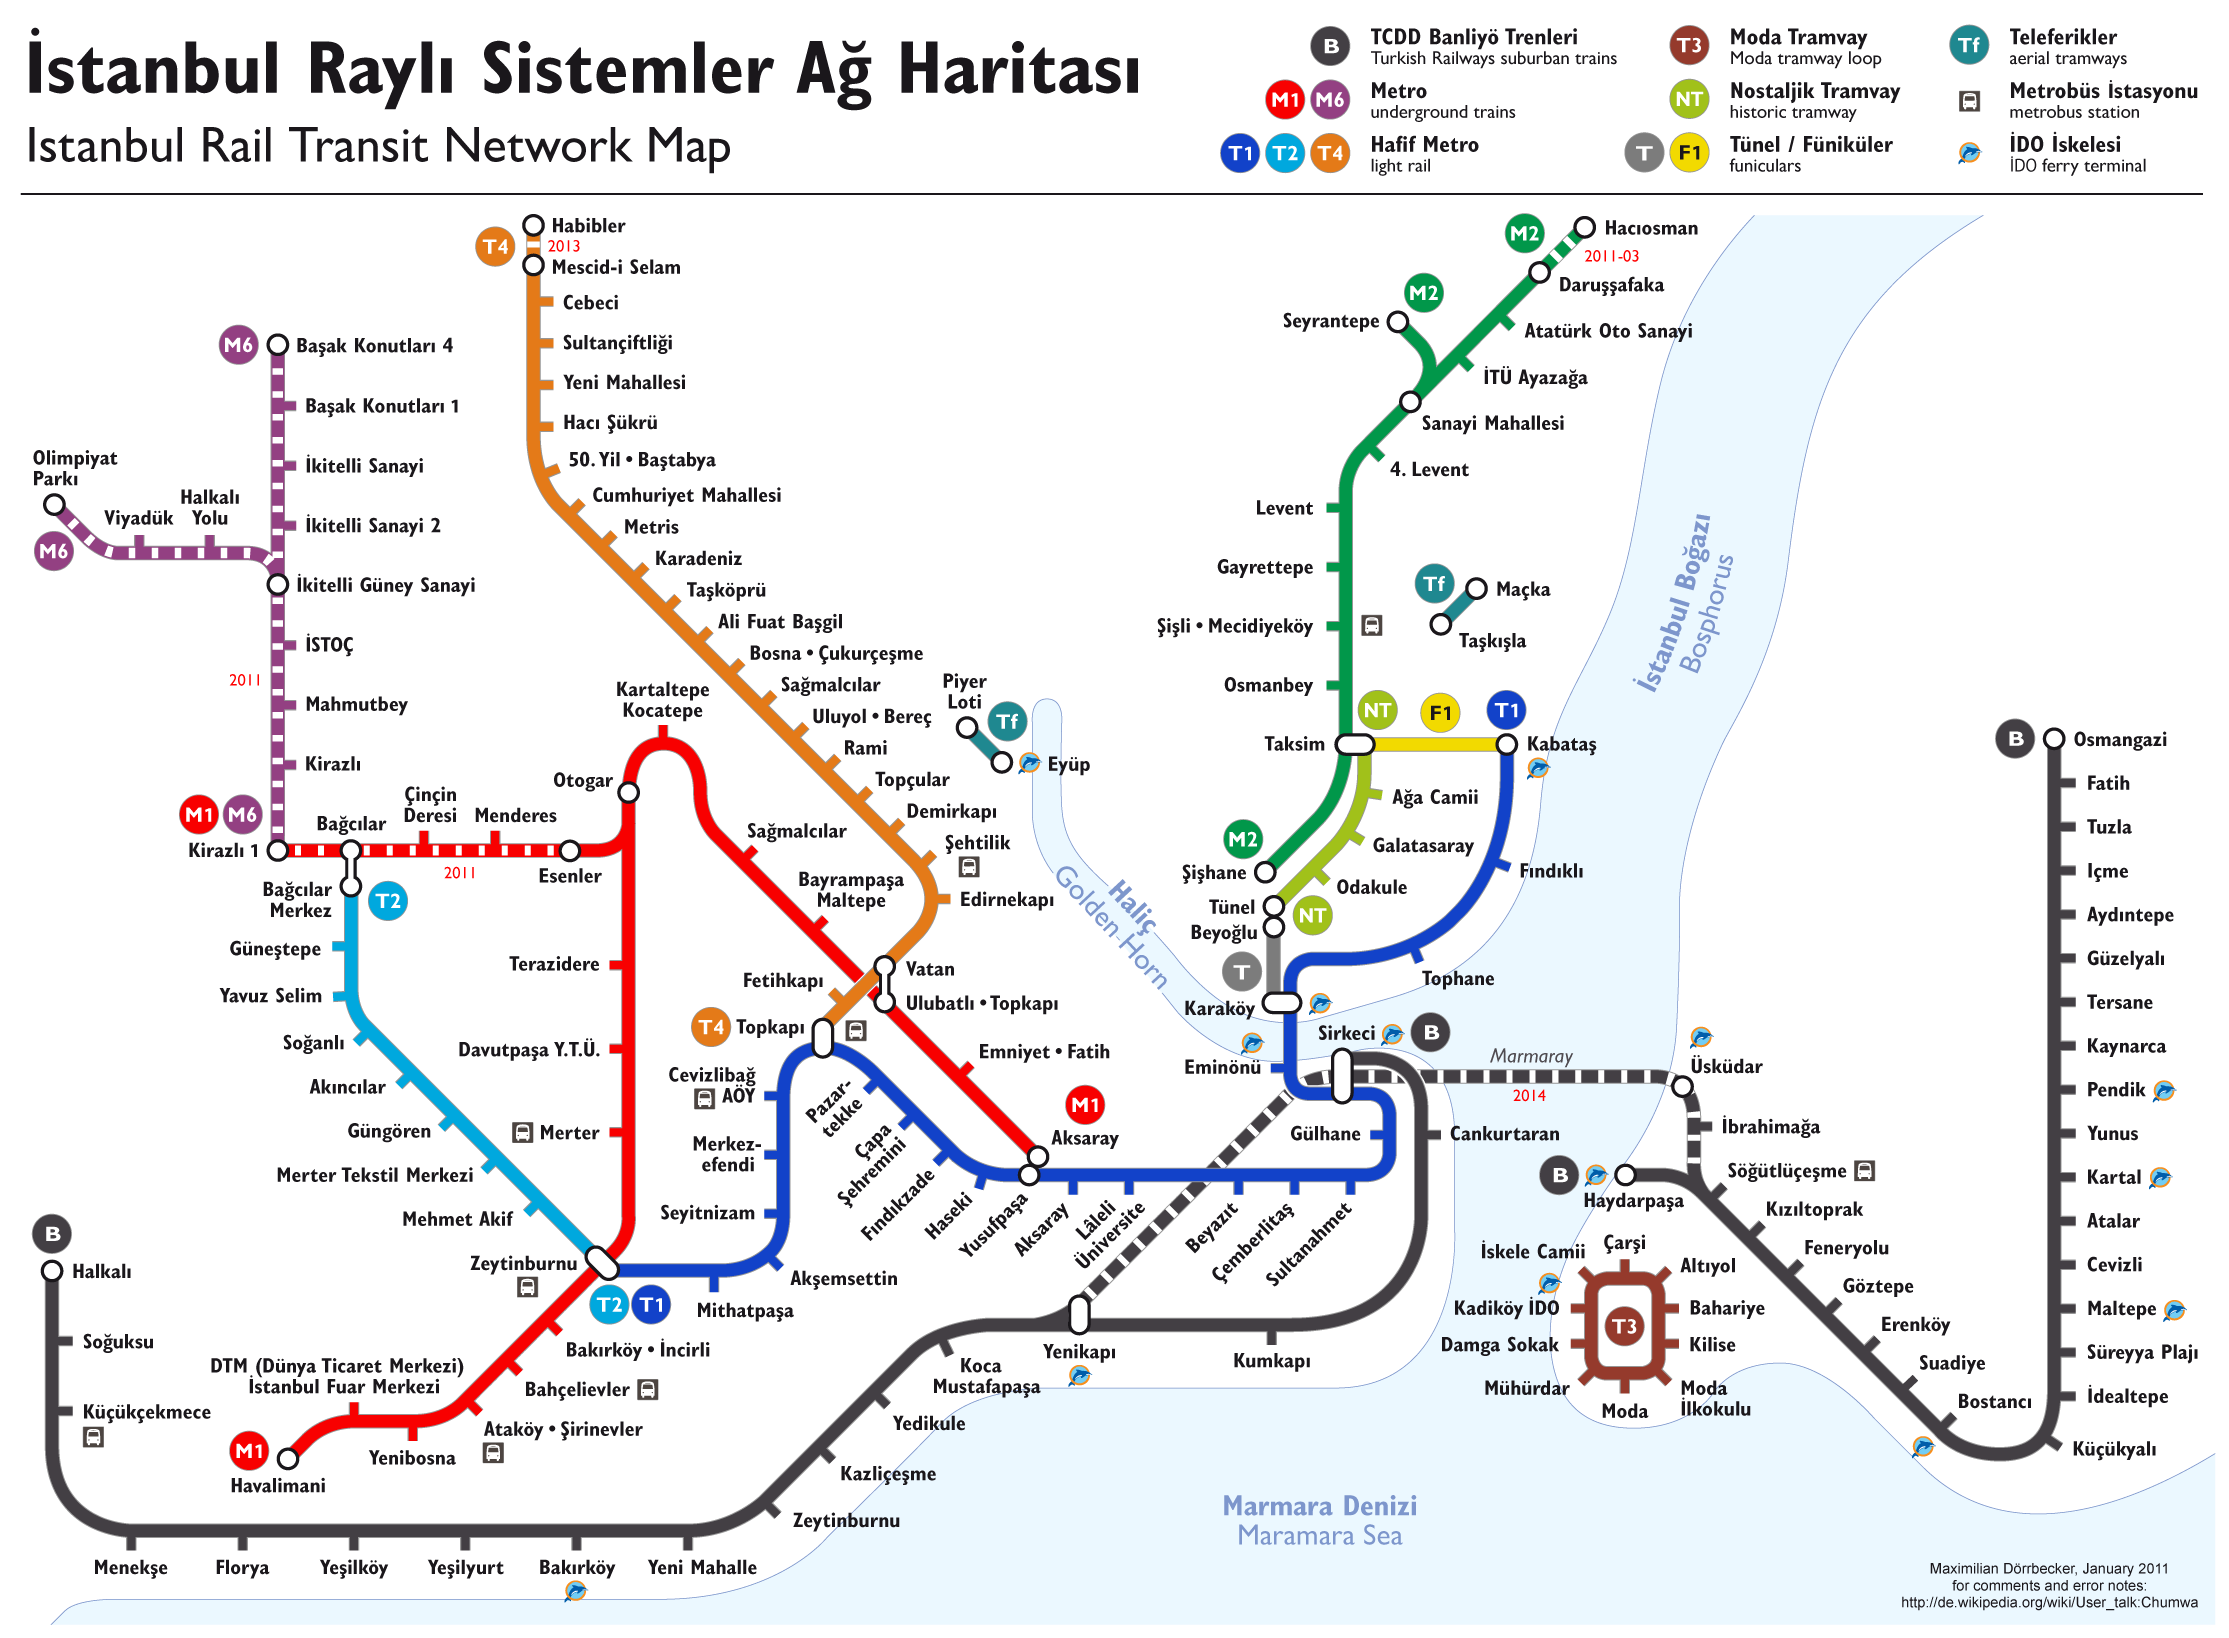 tube #subway #metro #transport #Istanbul Rail Transit #map ...